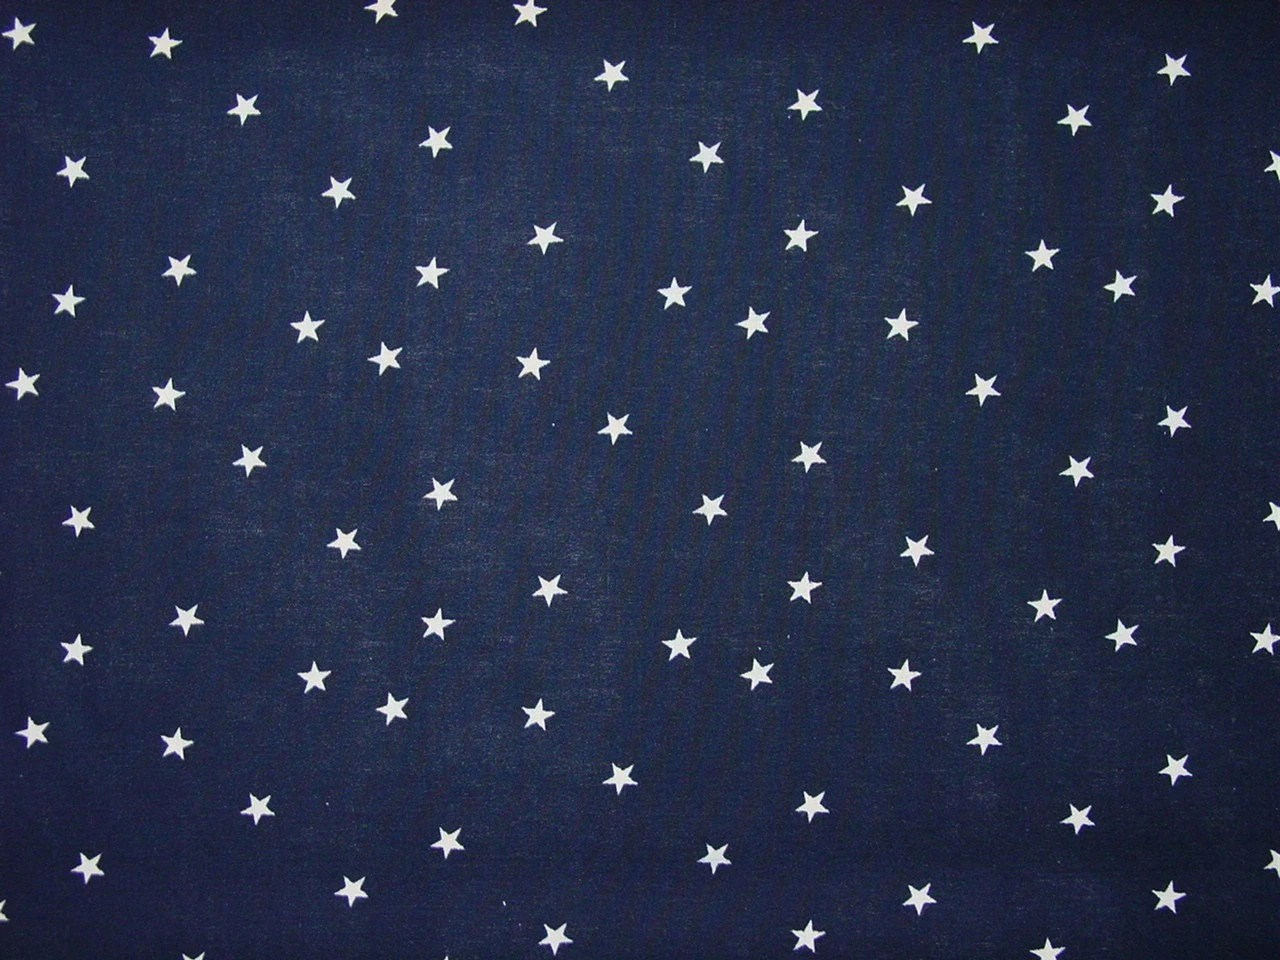 Floral Print Iphone Wallpaper Custom Listing For Reece Navy Blue Fabric With Small Stars